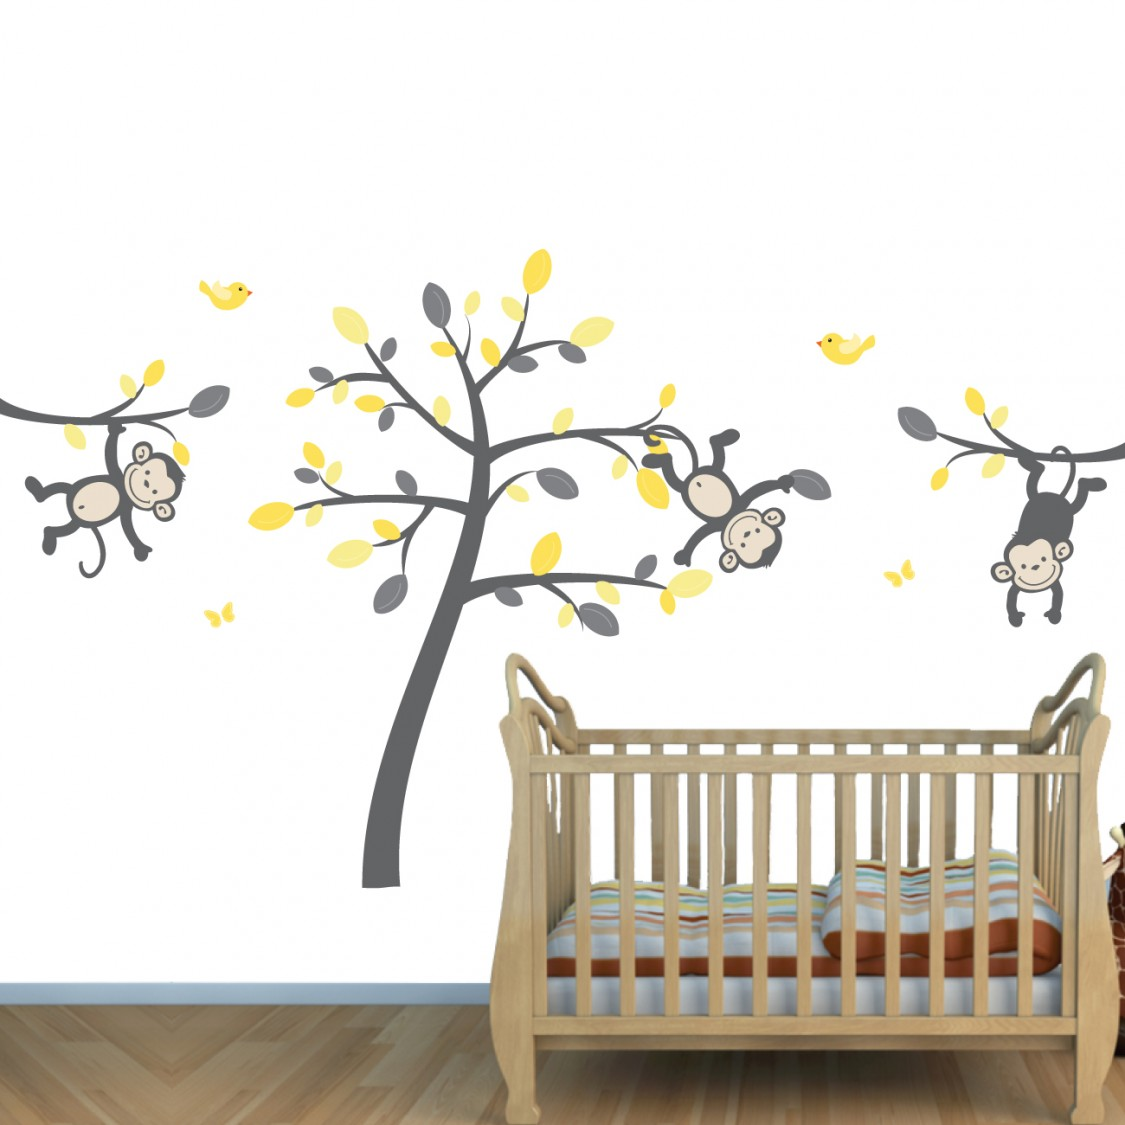 Baby Jungle Safari Wall Mural Of Yellow Gray Safari Murals With Monkey Wall Decals For